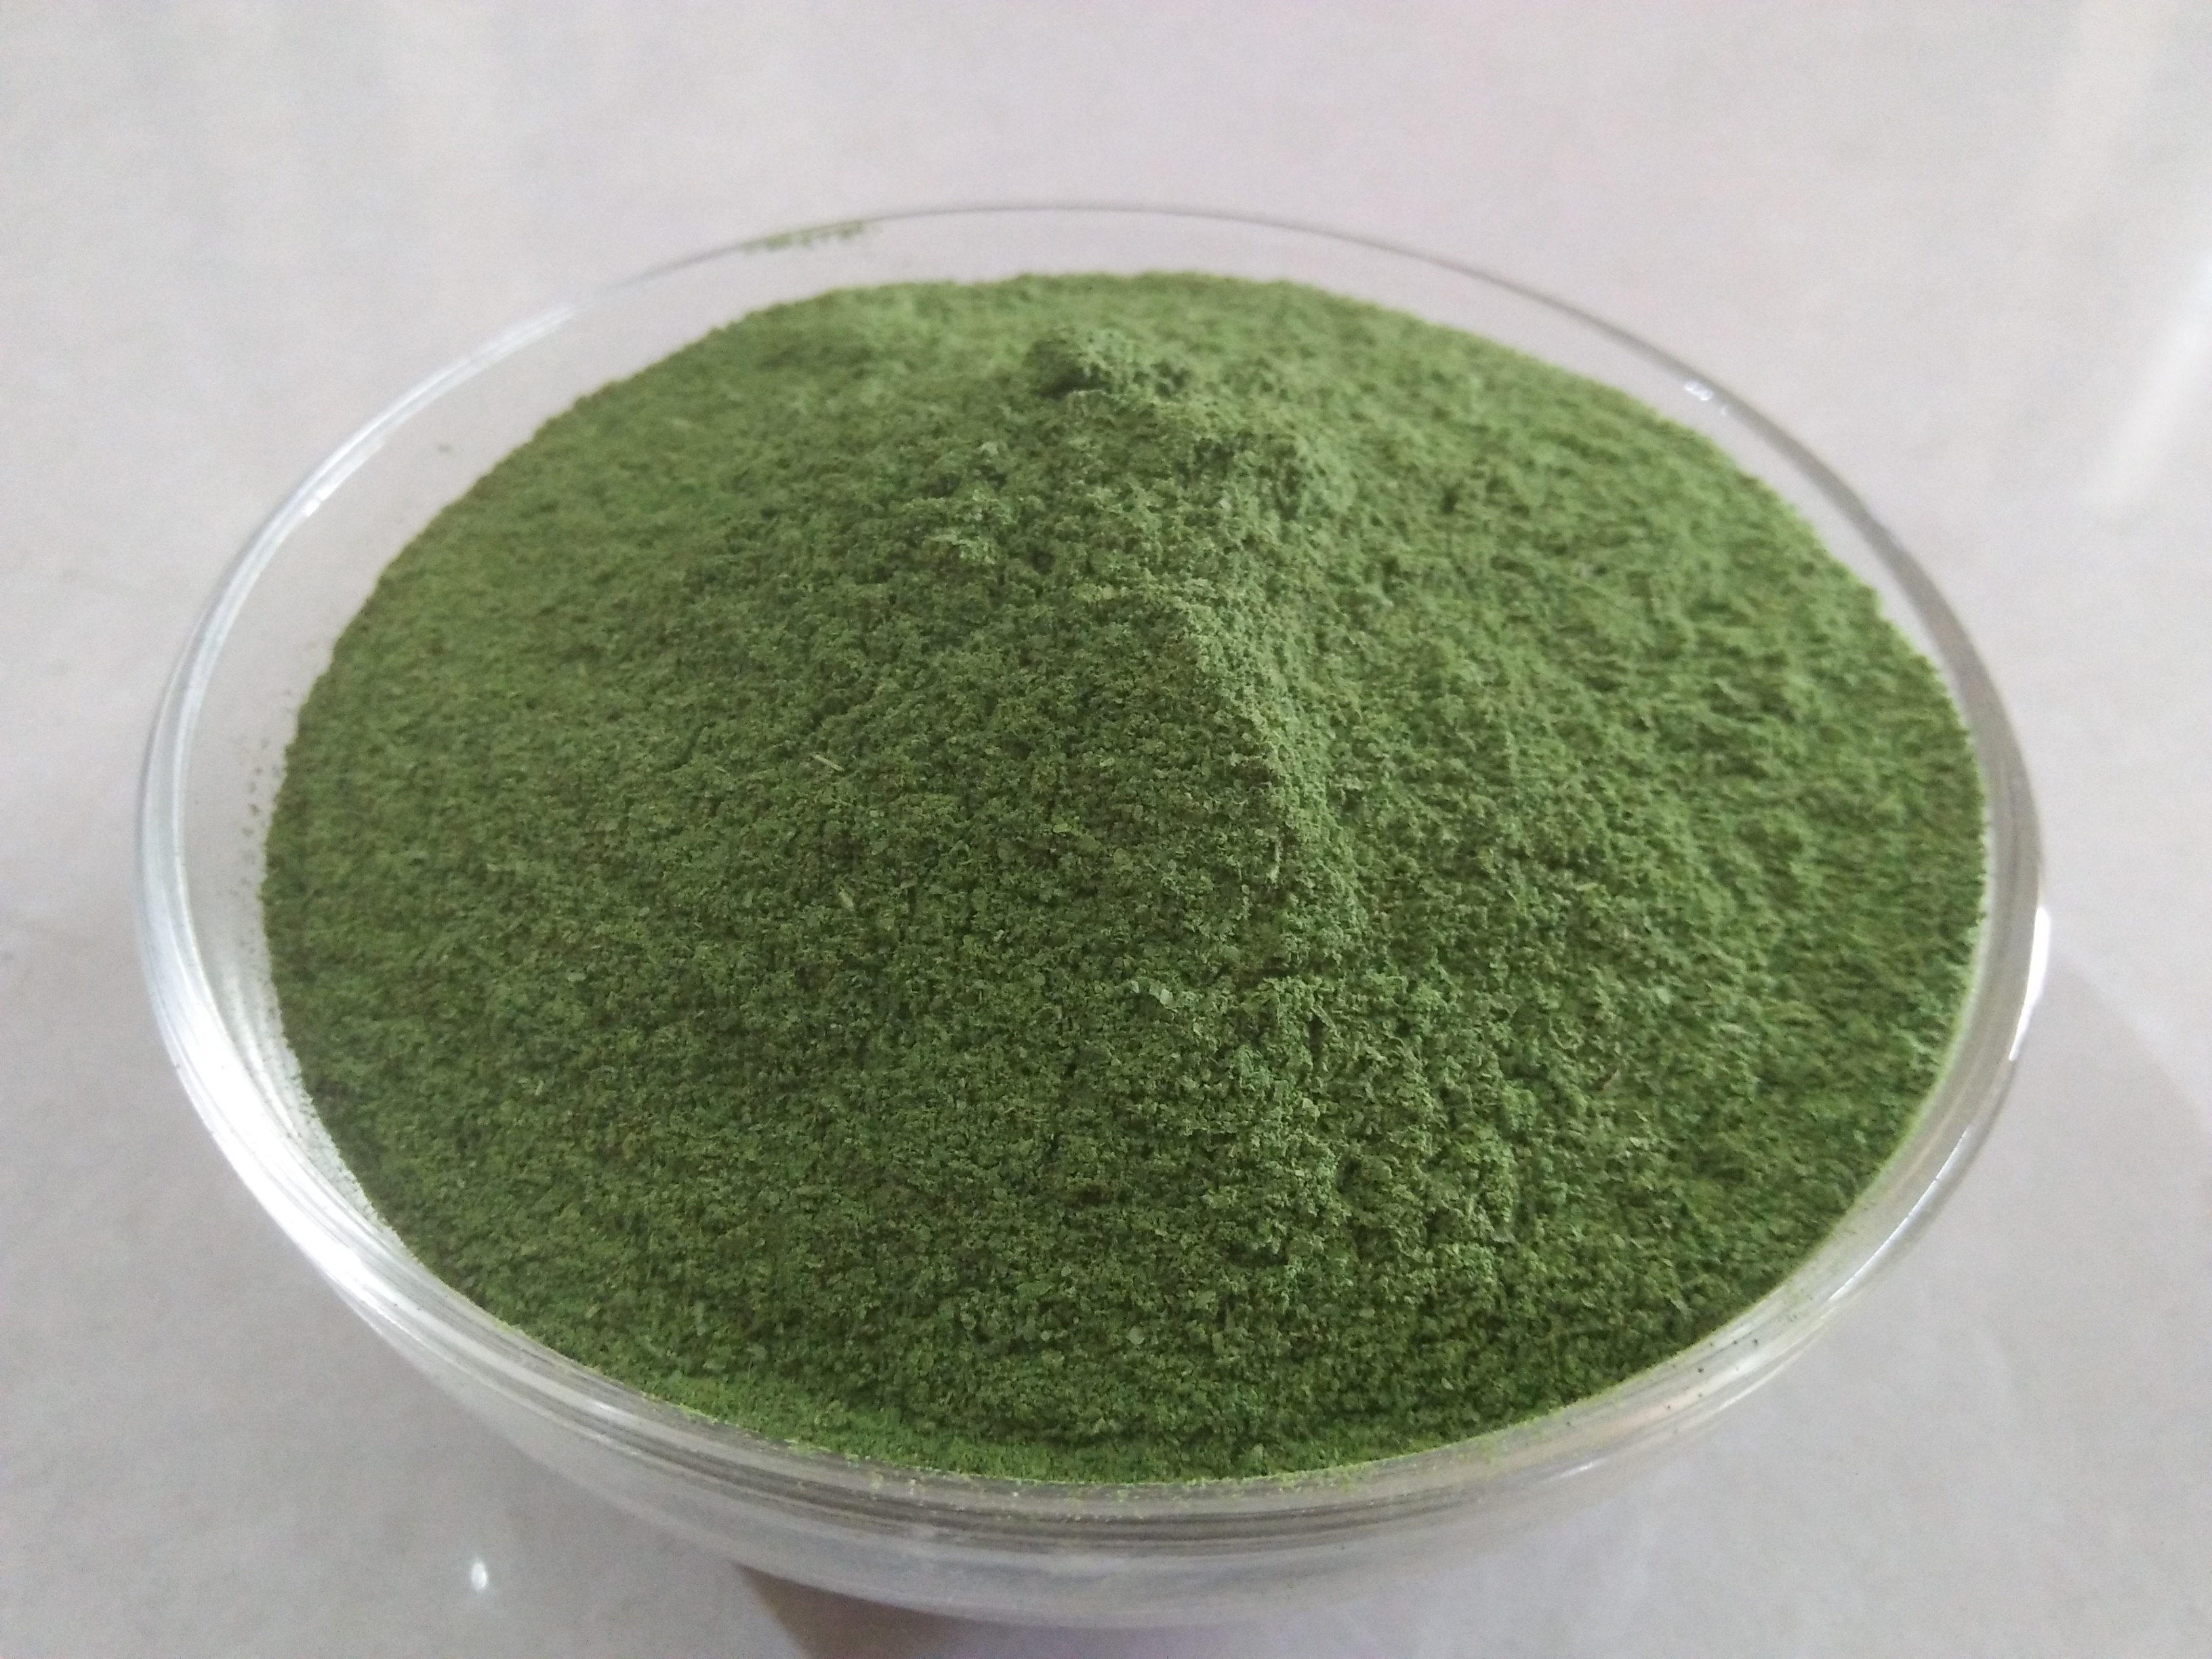 Moringa Products - Solar Dried Leaves, Tea Cut, Powder, Oil Etc., In Bulk Supply.